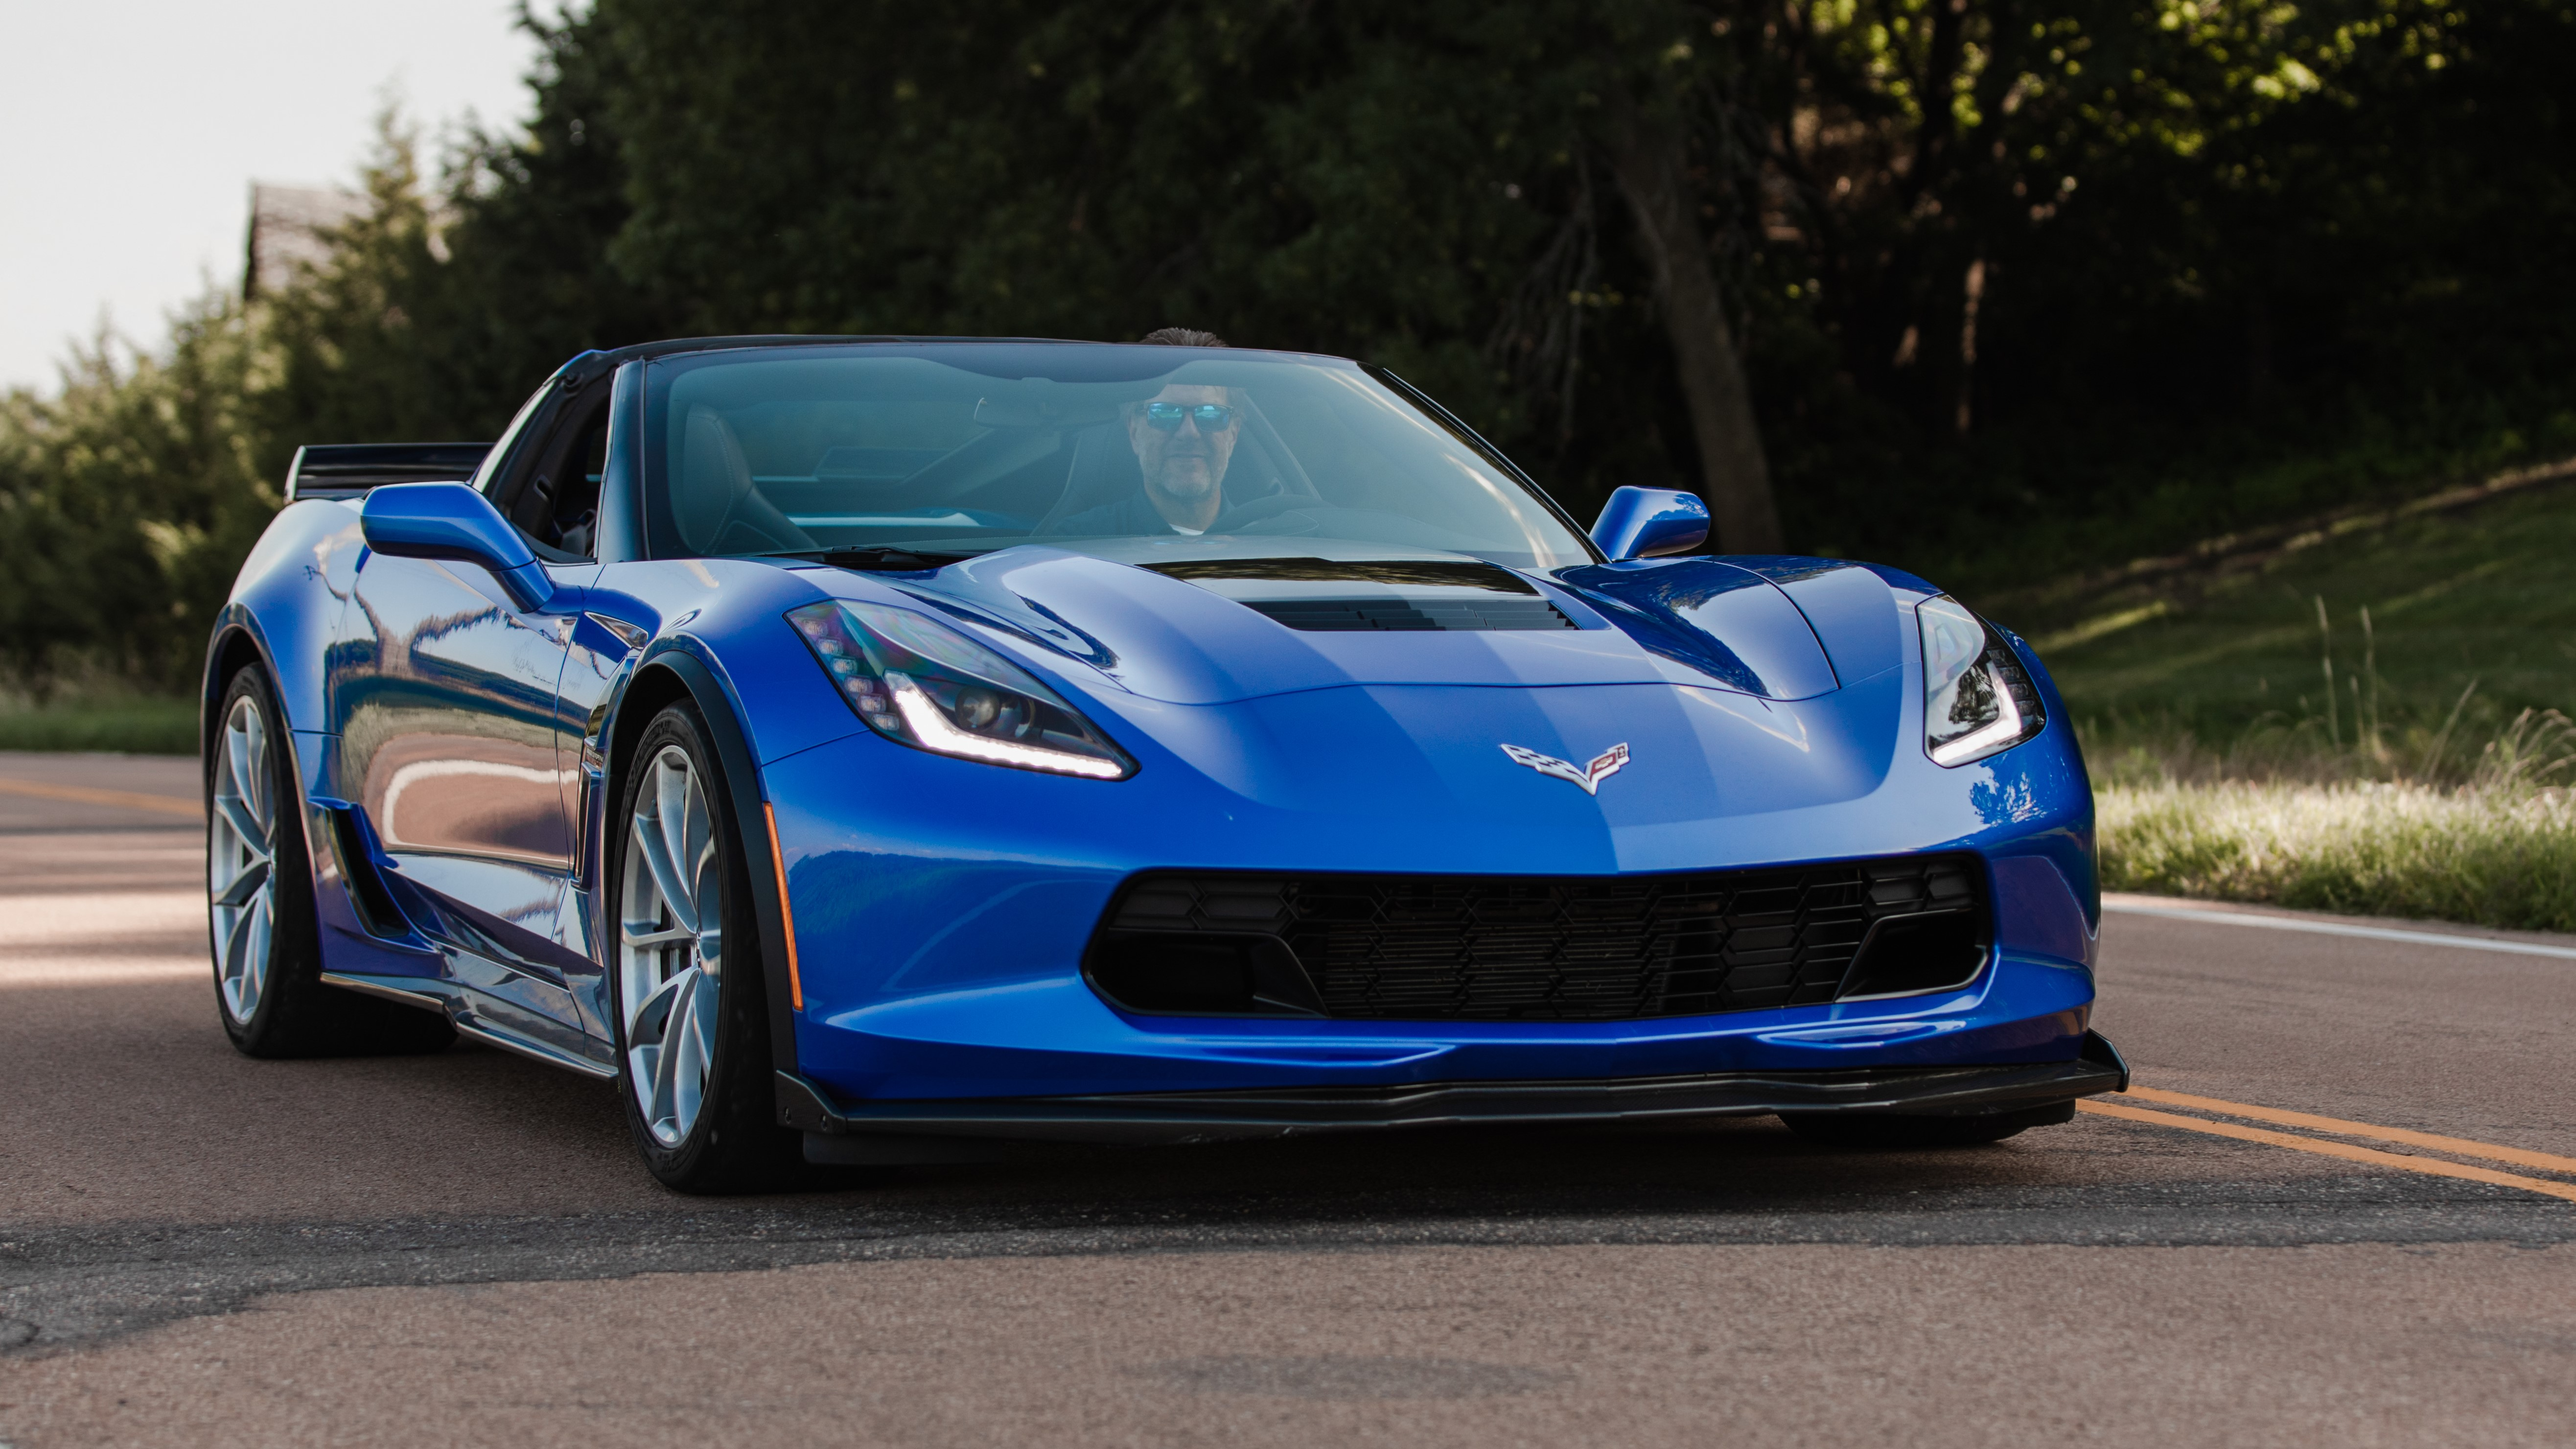 What happens when you record a burnout with a 2019 Chevy Corvette GS